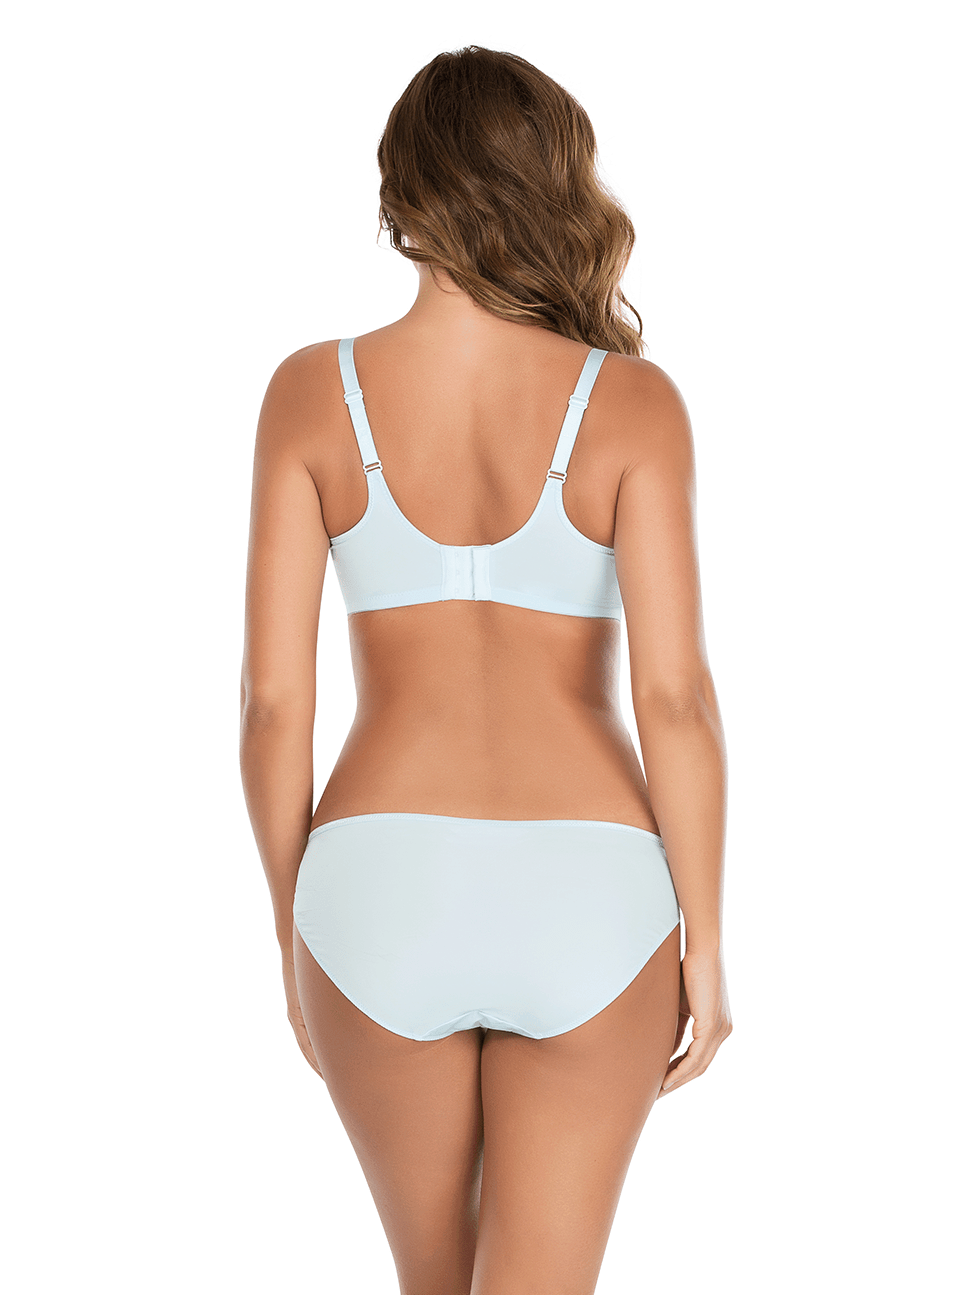 Enora MinimizerBraP5272 BikiniP5273 WhisperBlue Back - Enora Minimizer Bra - Whisper Blue - P5272